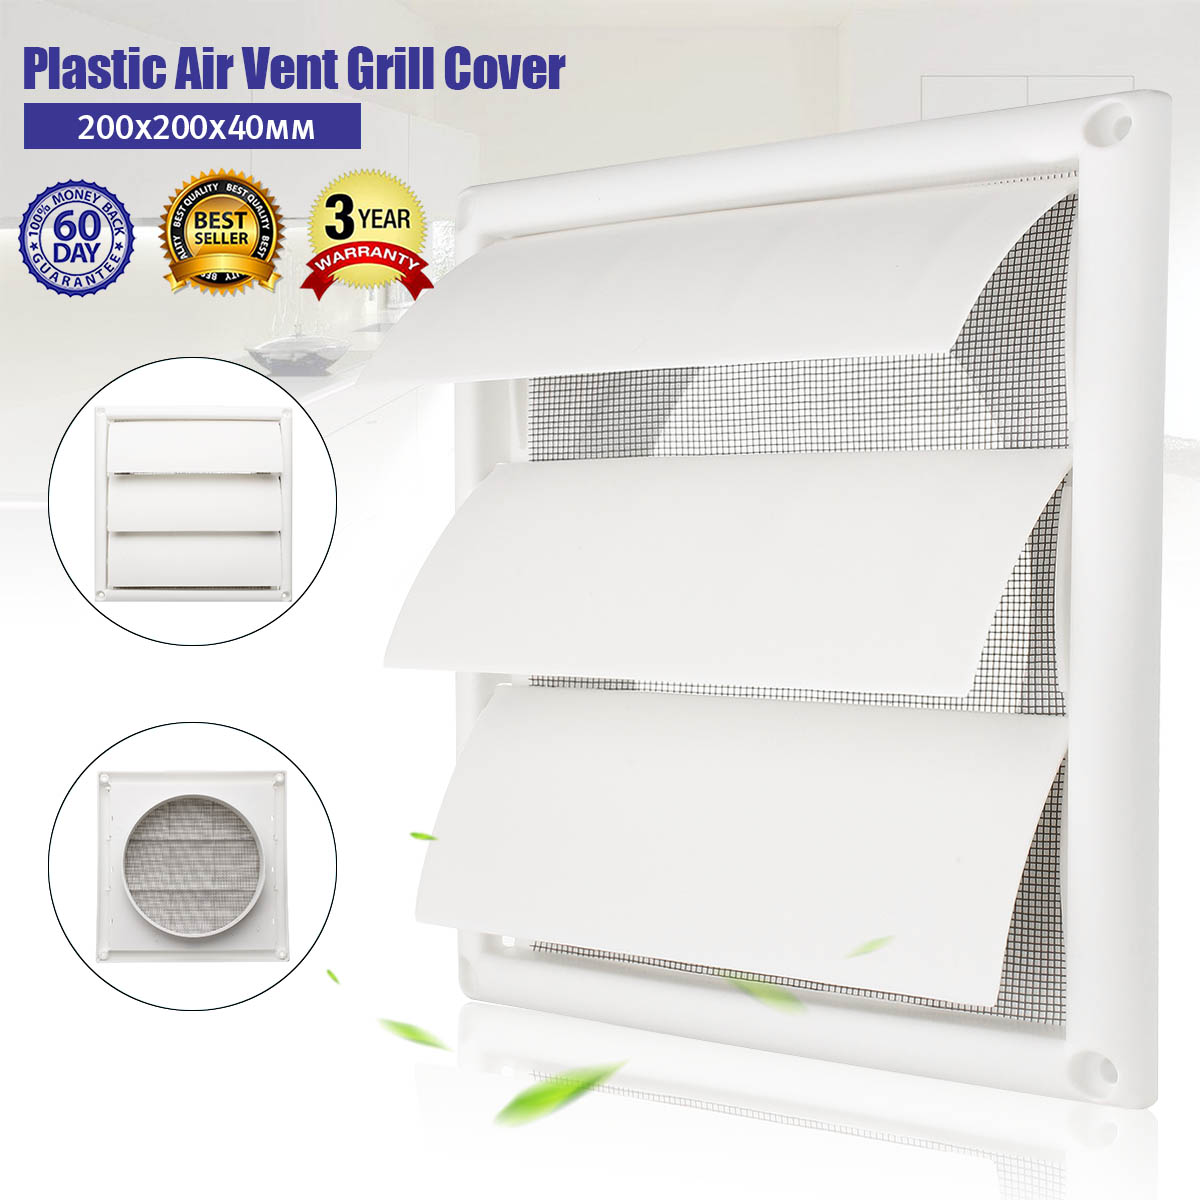 MTGATHER Air Vent Grille Ventilation Cover Plastic White Wall Grilles Duct 200x200x40mm Heating Cooling & Vents Vents